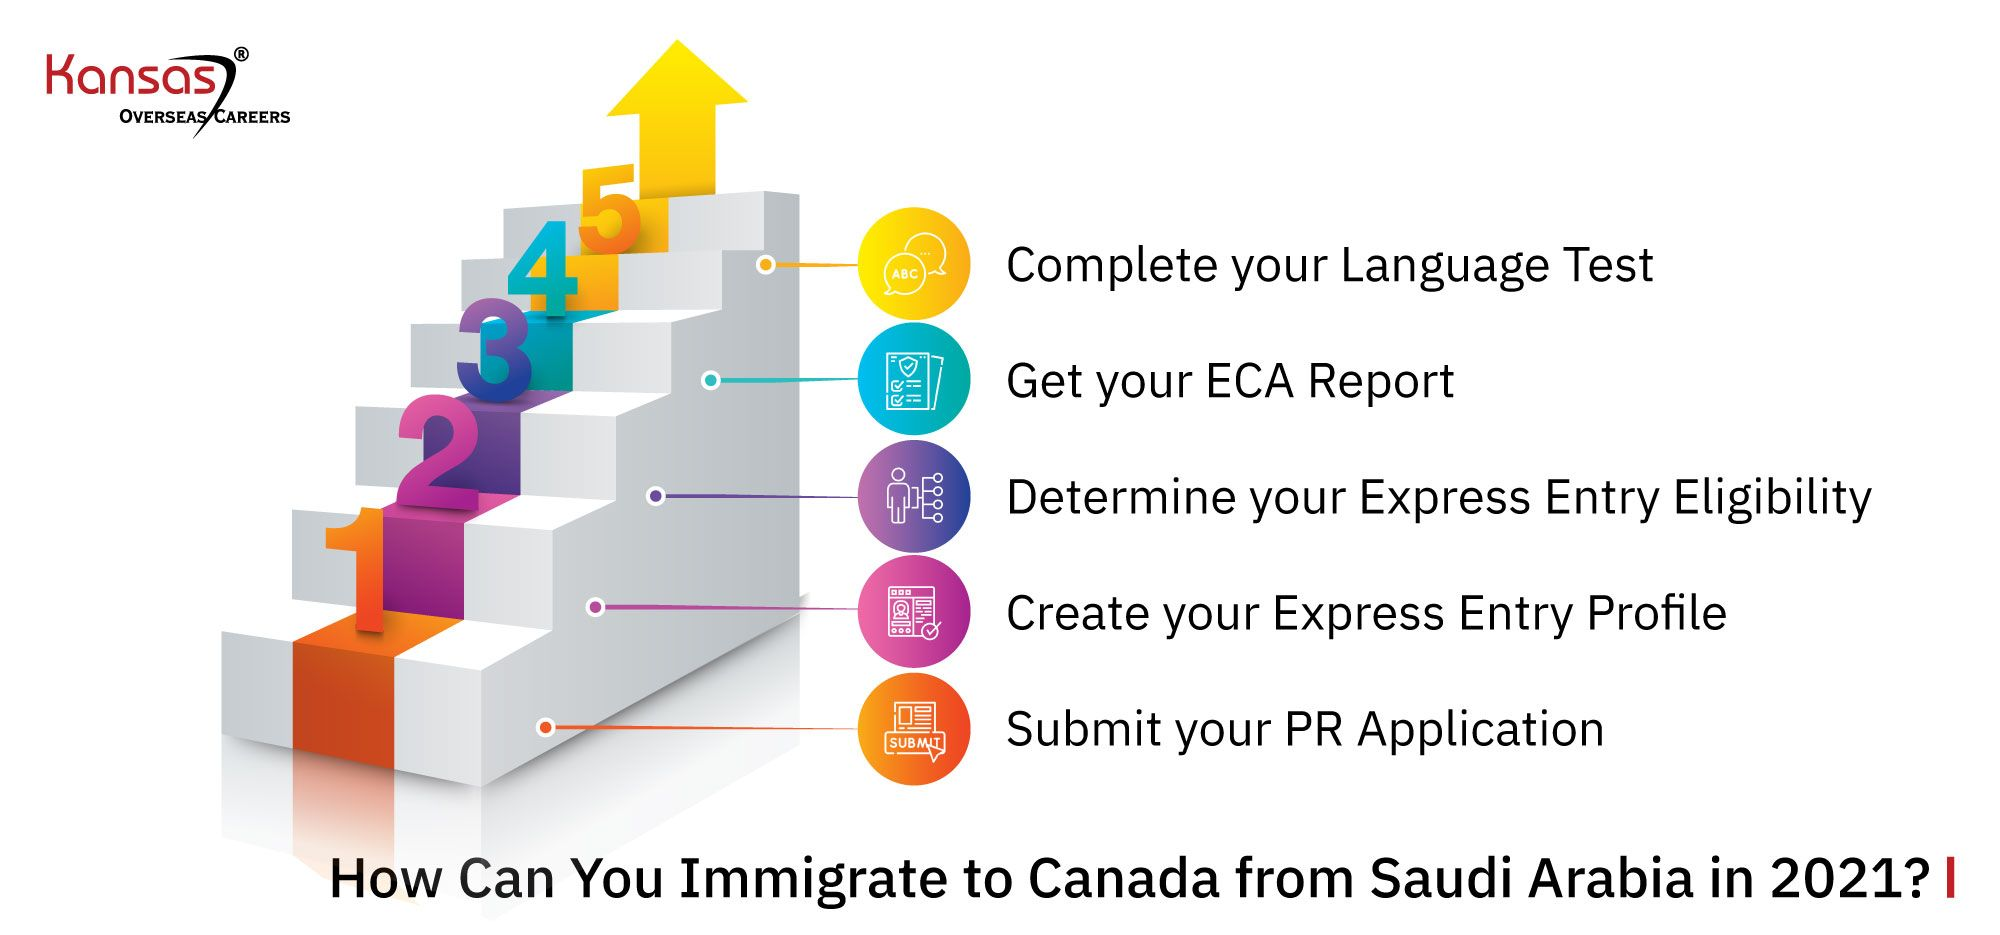 How-Can-You-Immigrate-to-Canada-from-Saudi-Arabia-in-2021-